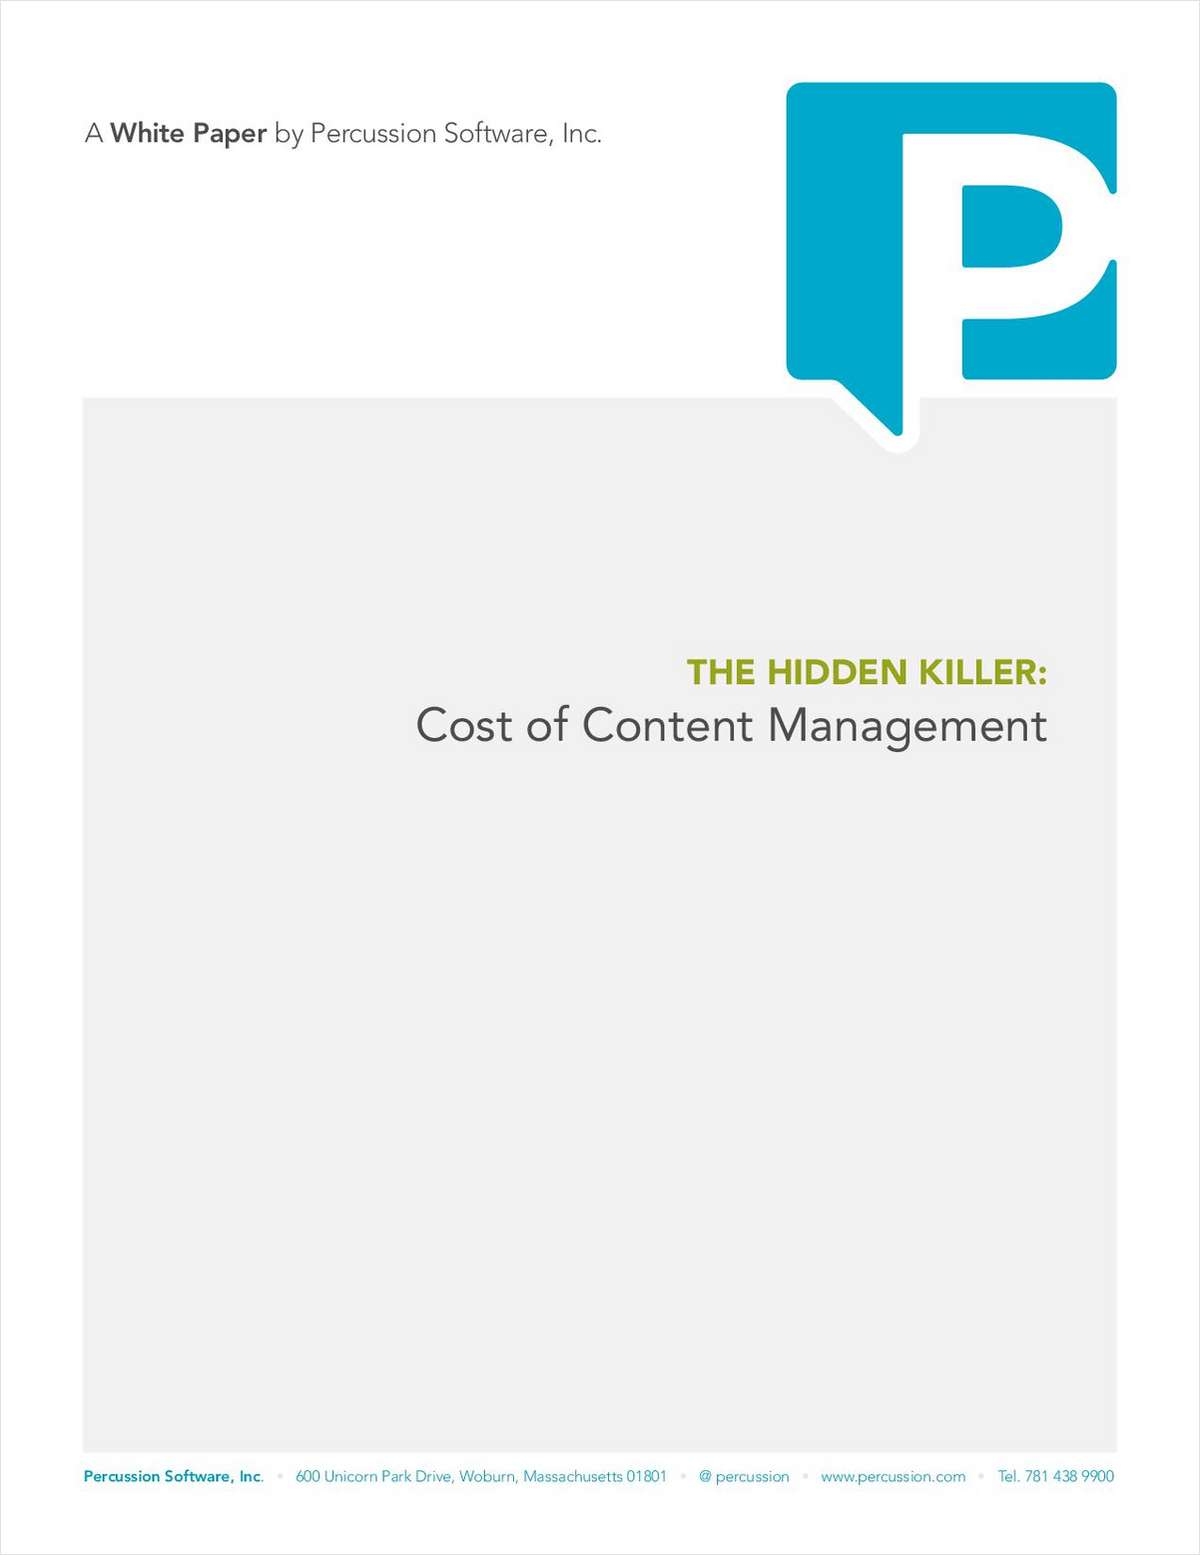 The Hidden Killer: Cost of Content Management